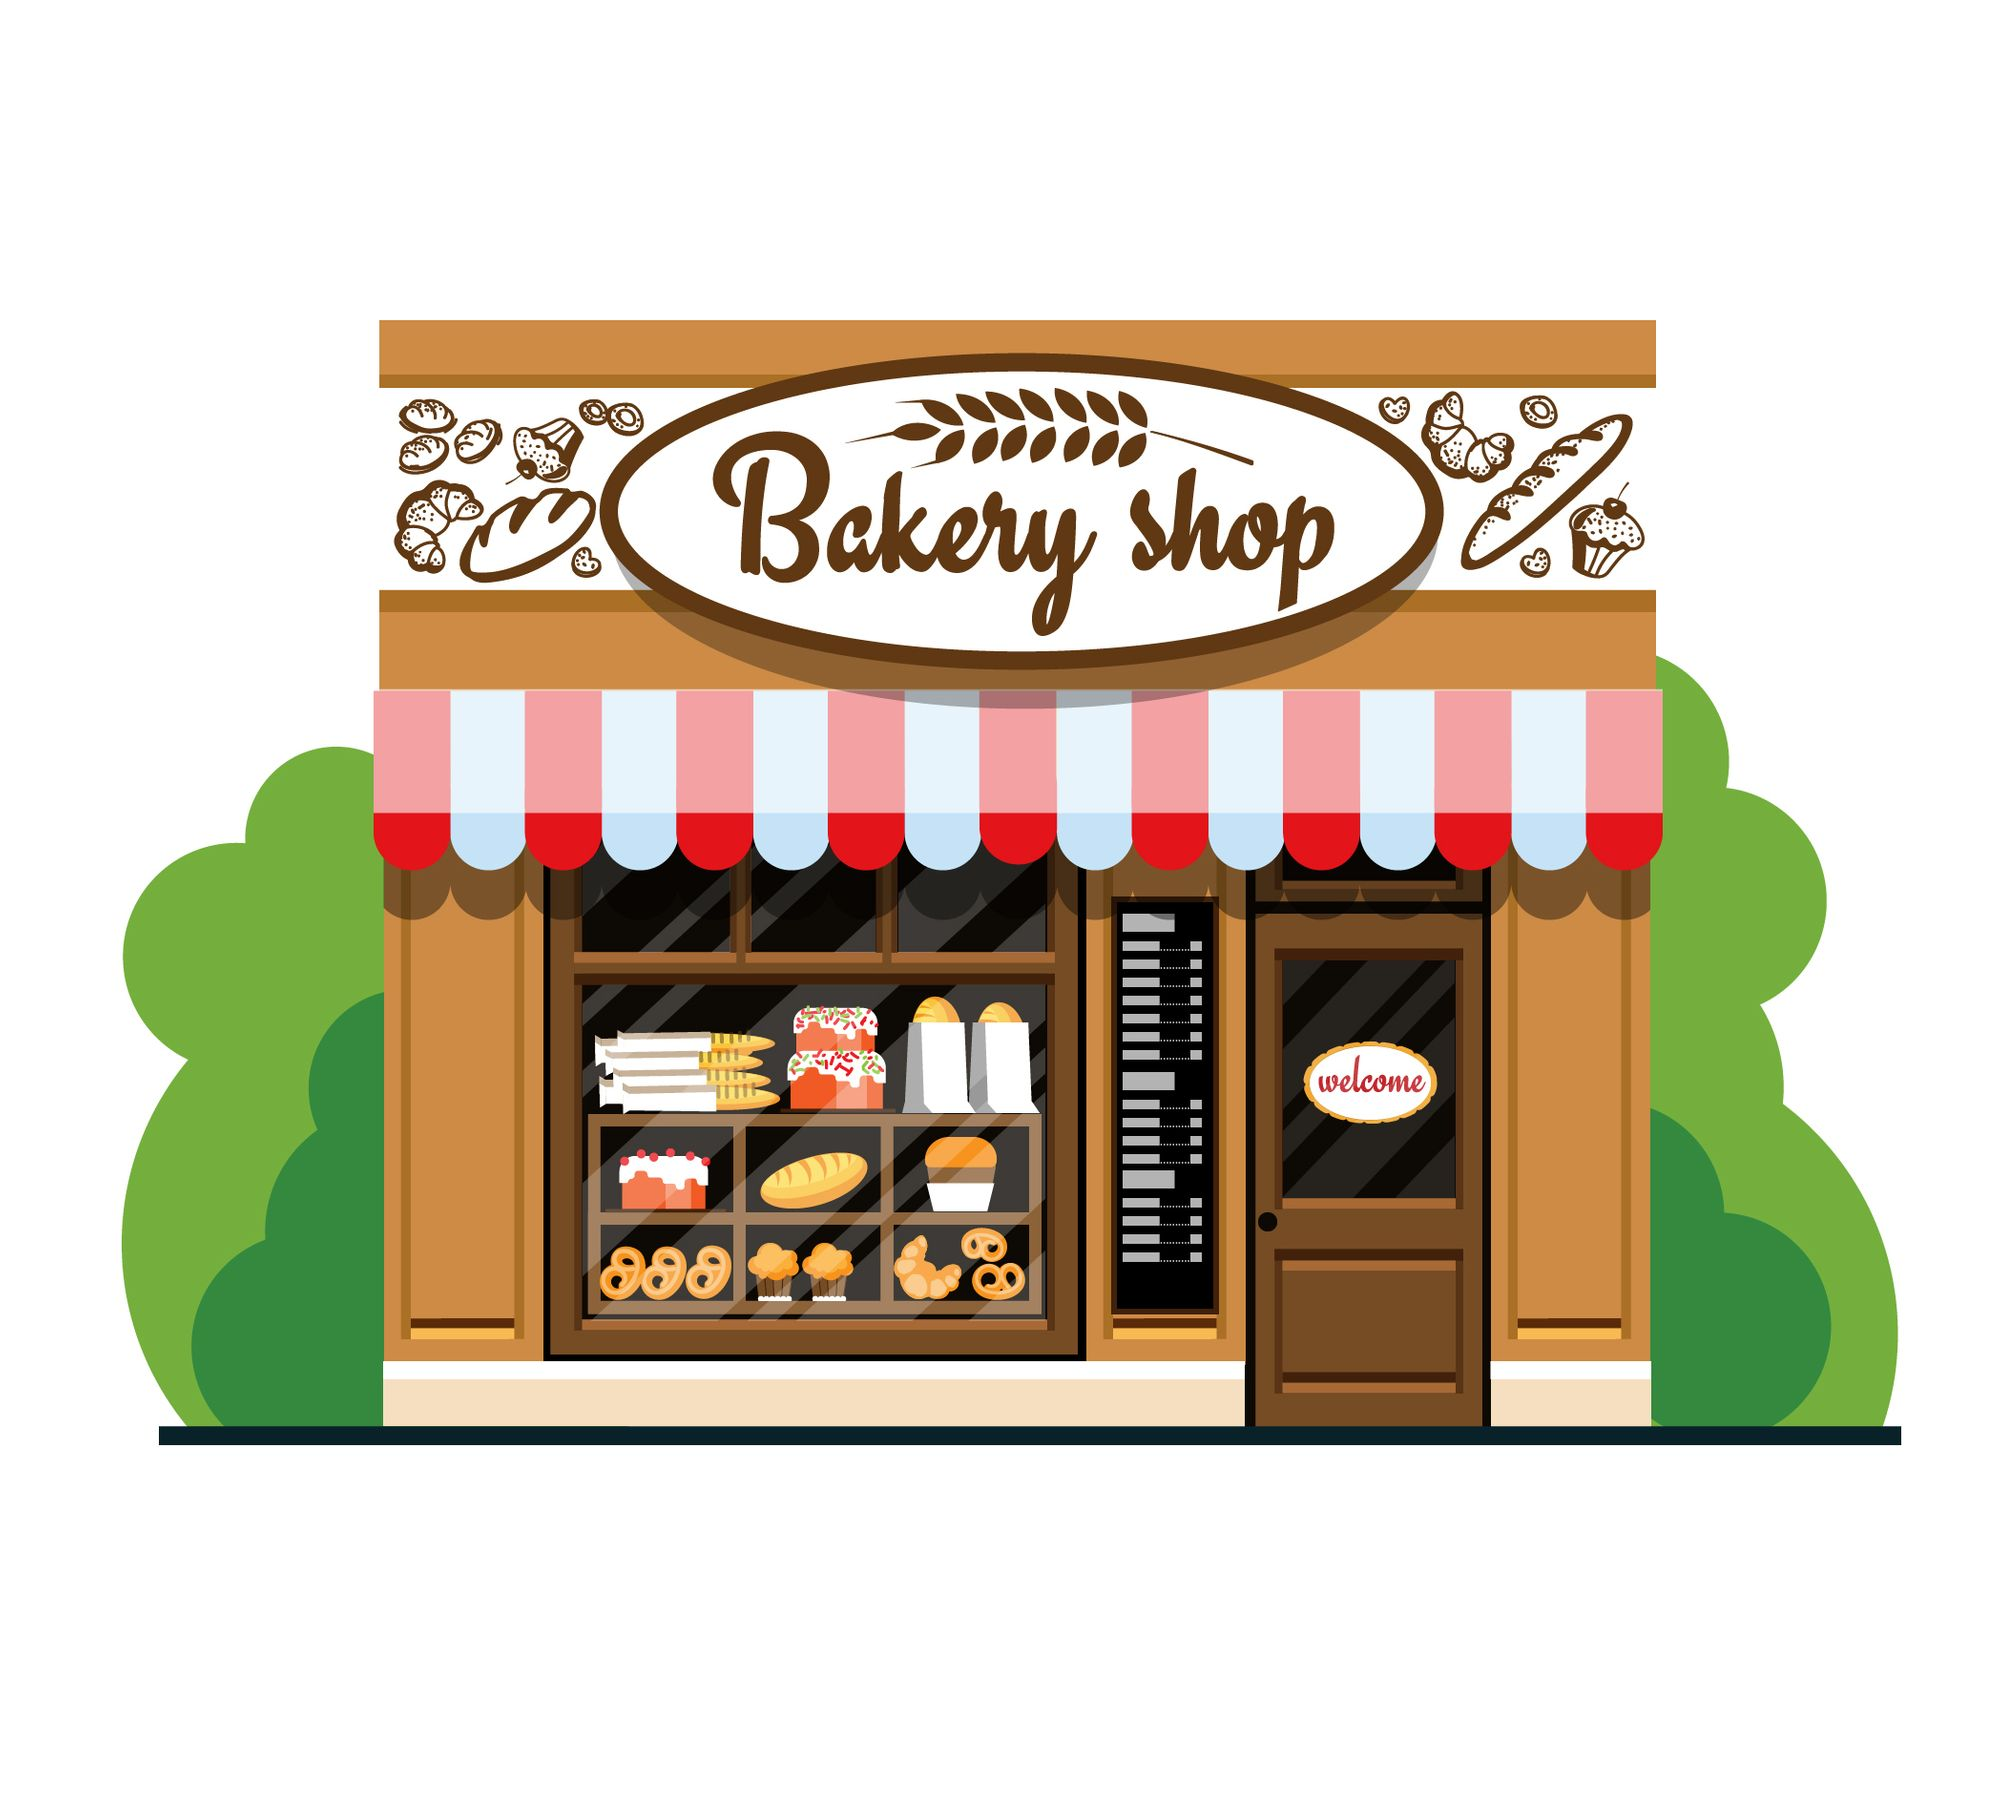 How to start a Bakery? Complete business plan for starting a Bakery in India